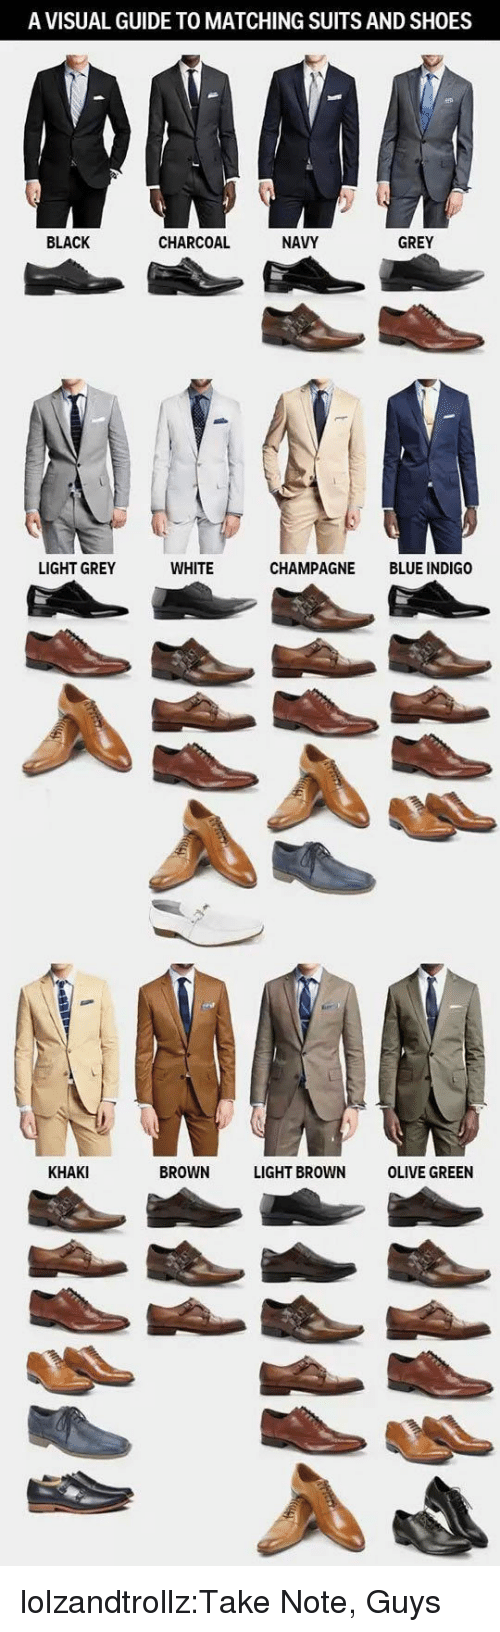 Shoes, Tumblr, and Black: A VISUAL GUIDE TO MATCHING SUITS AND SHOES  BLACK  CHARCOAL  NAVY  GREY  LIGHT GREY  WHITE  CHAMPAGNE BLUE INDIGO  KHAKI  BROWN LIGHT BROWN OLIVE GREEN lolzandtrollz:Take Note, Guys